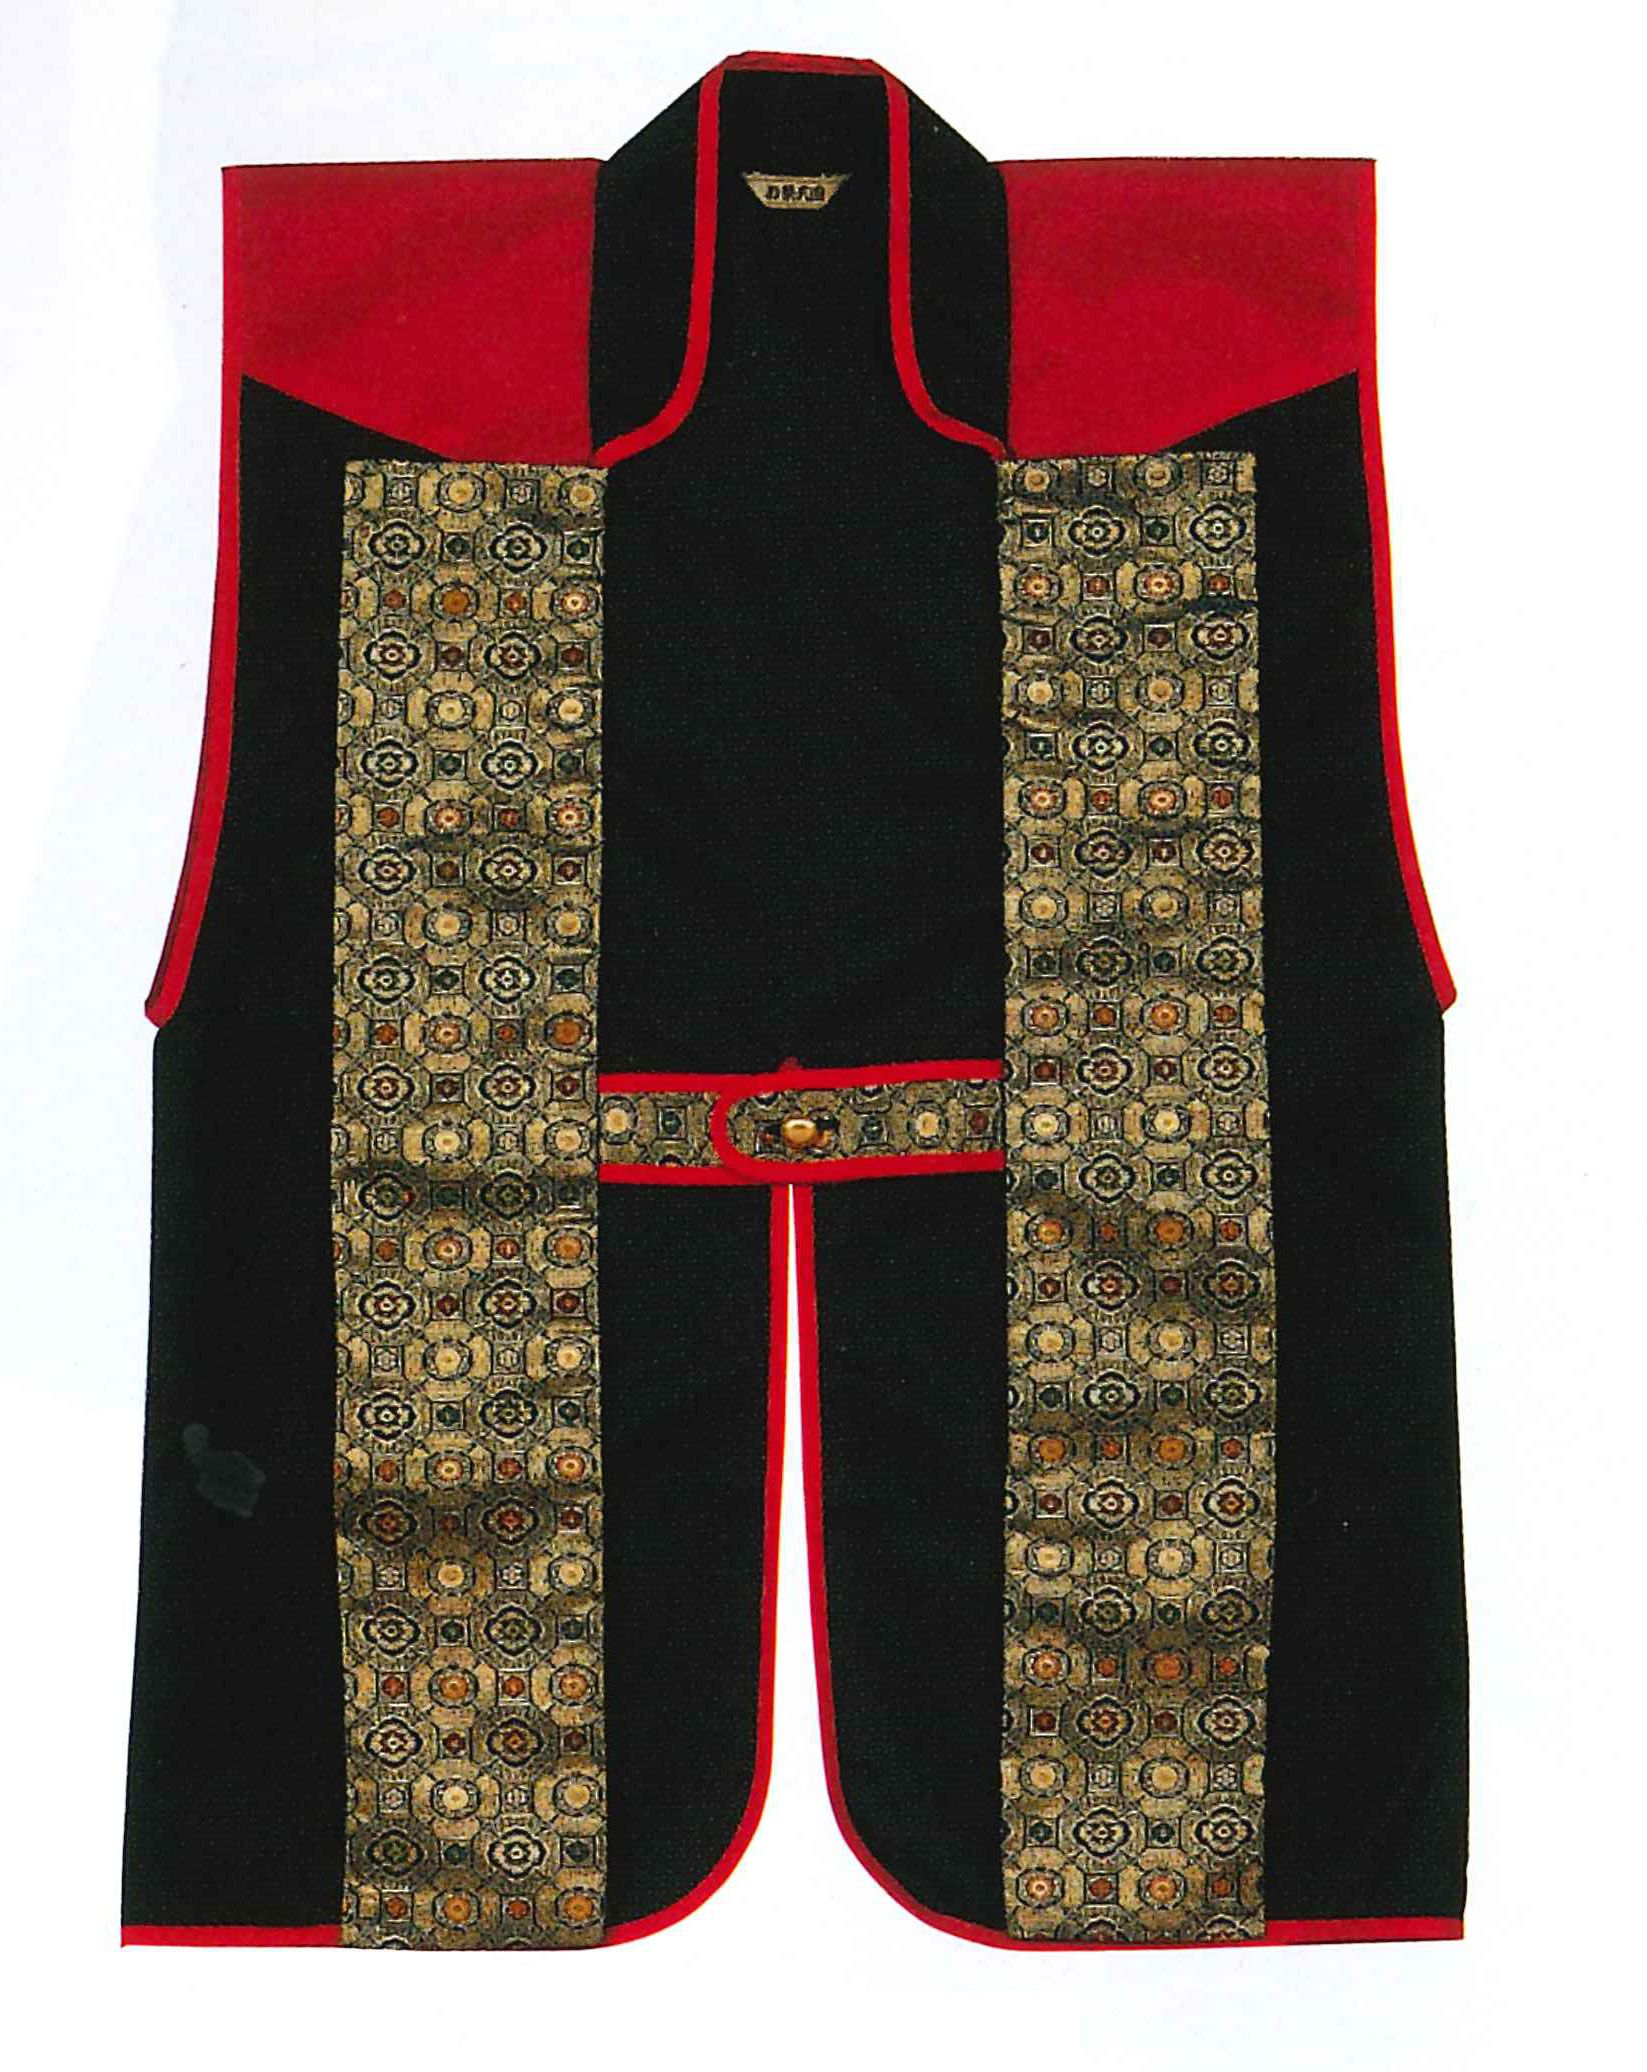 Red and Black TWO TONE Jinbaori (without liner), surcoat